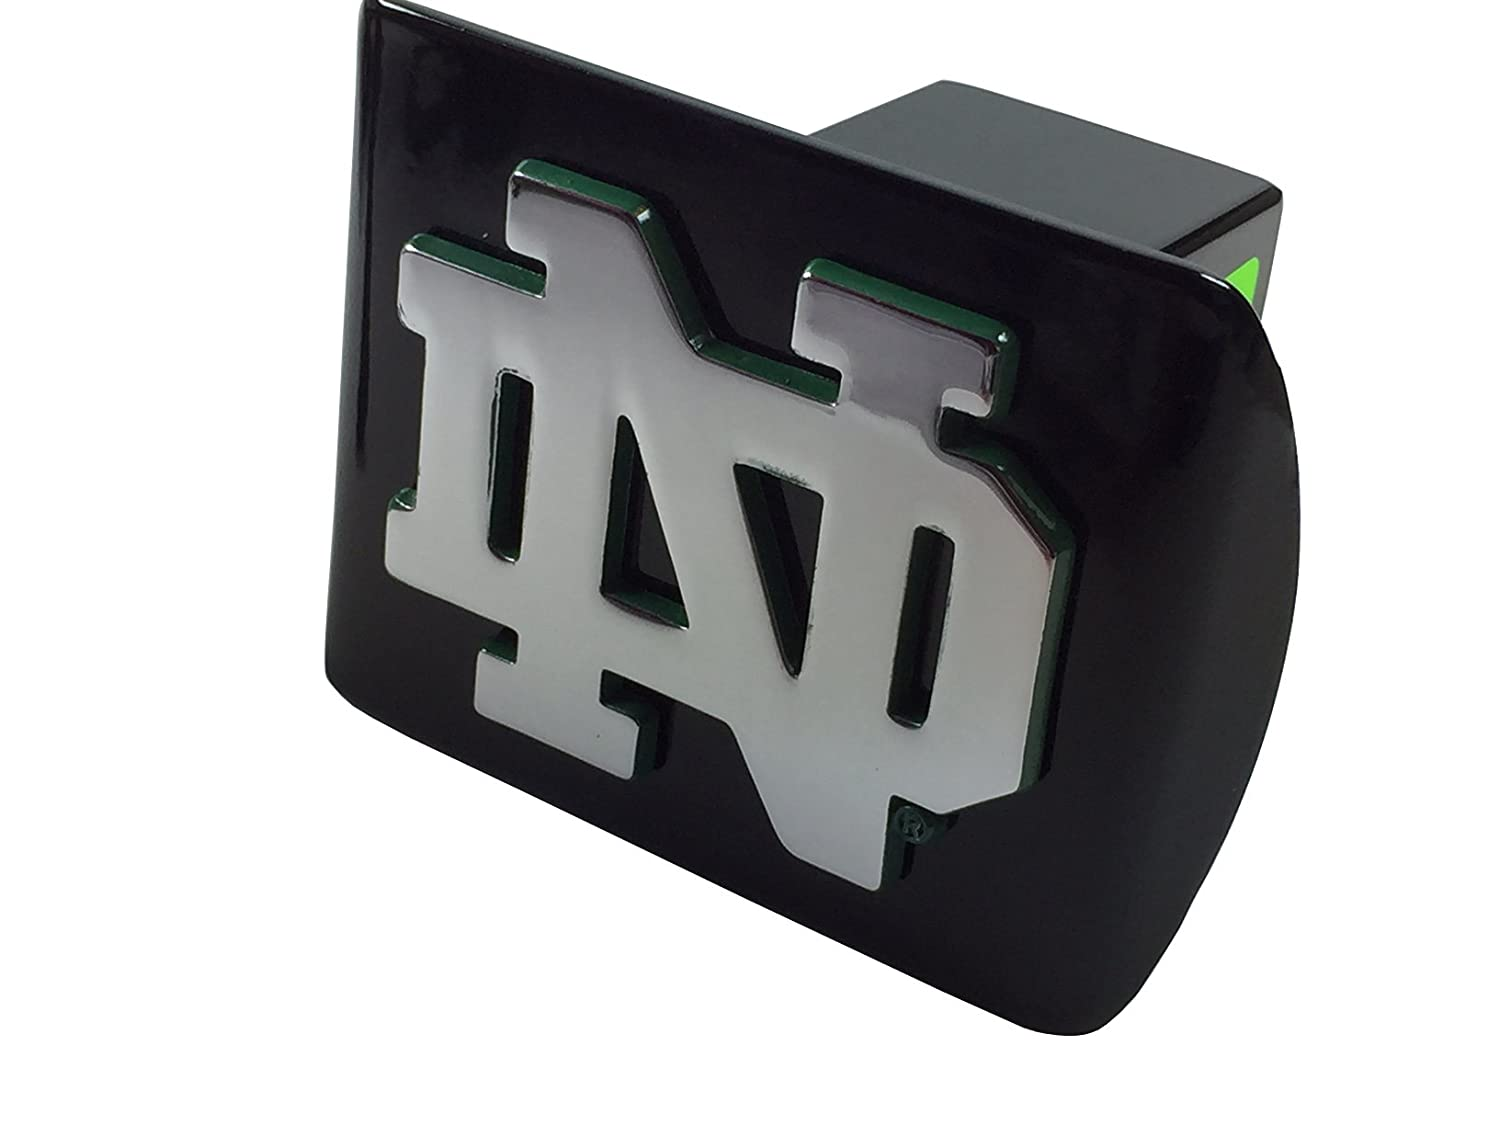 Notre Dame METAL ND emblem on black METAL Hitch Cover AMG chrome with green trim